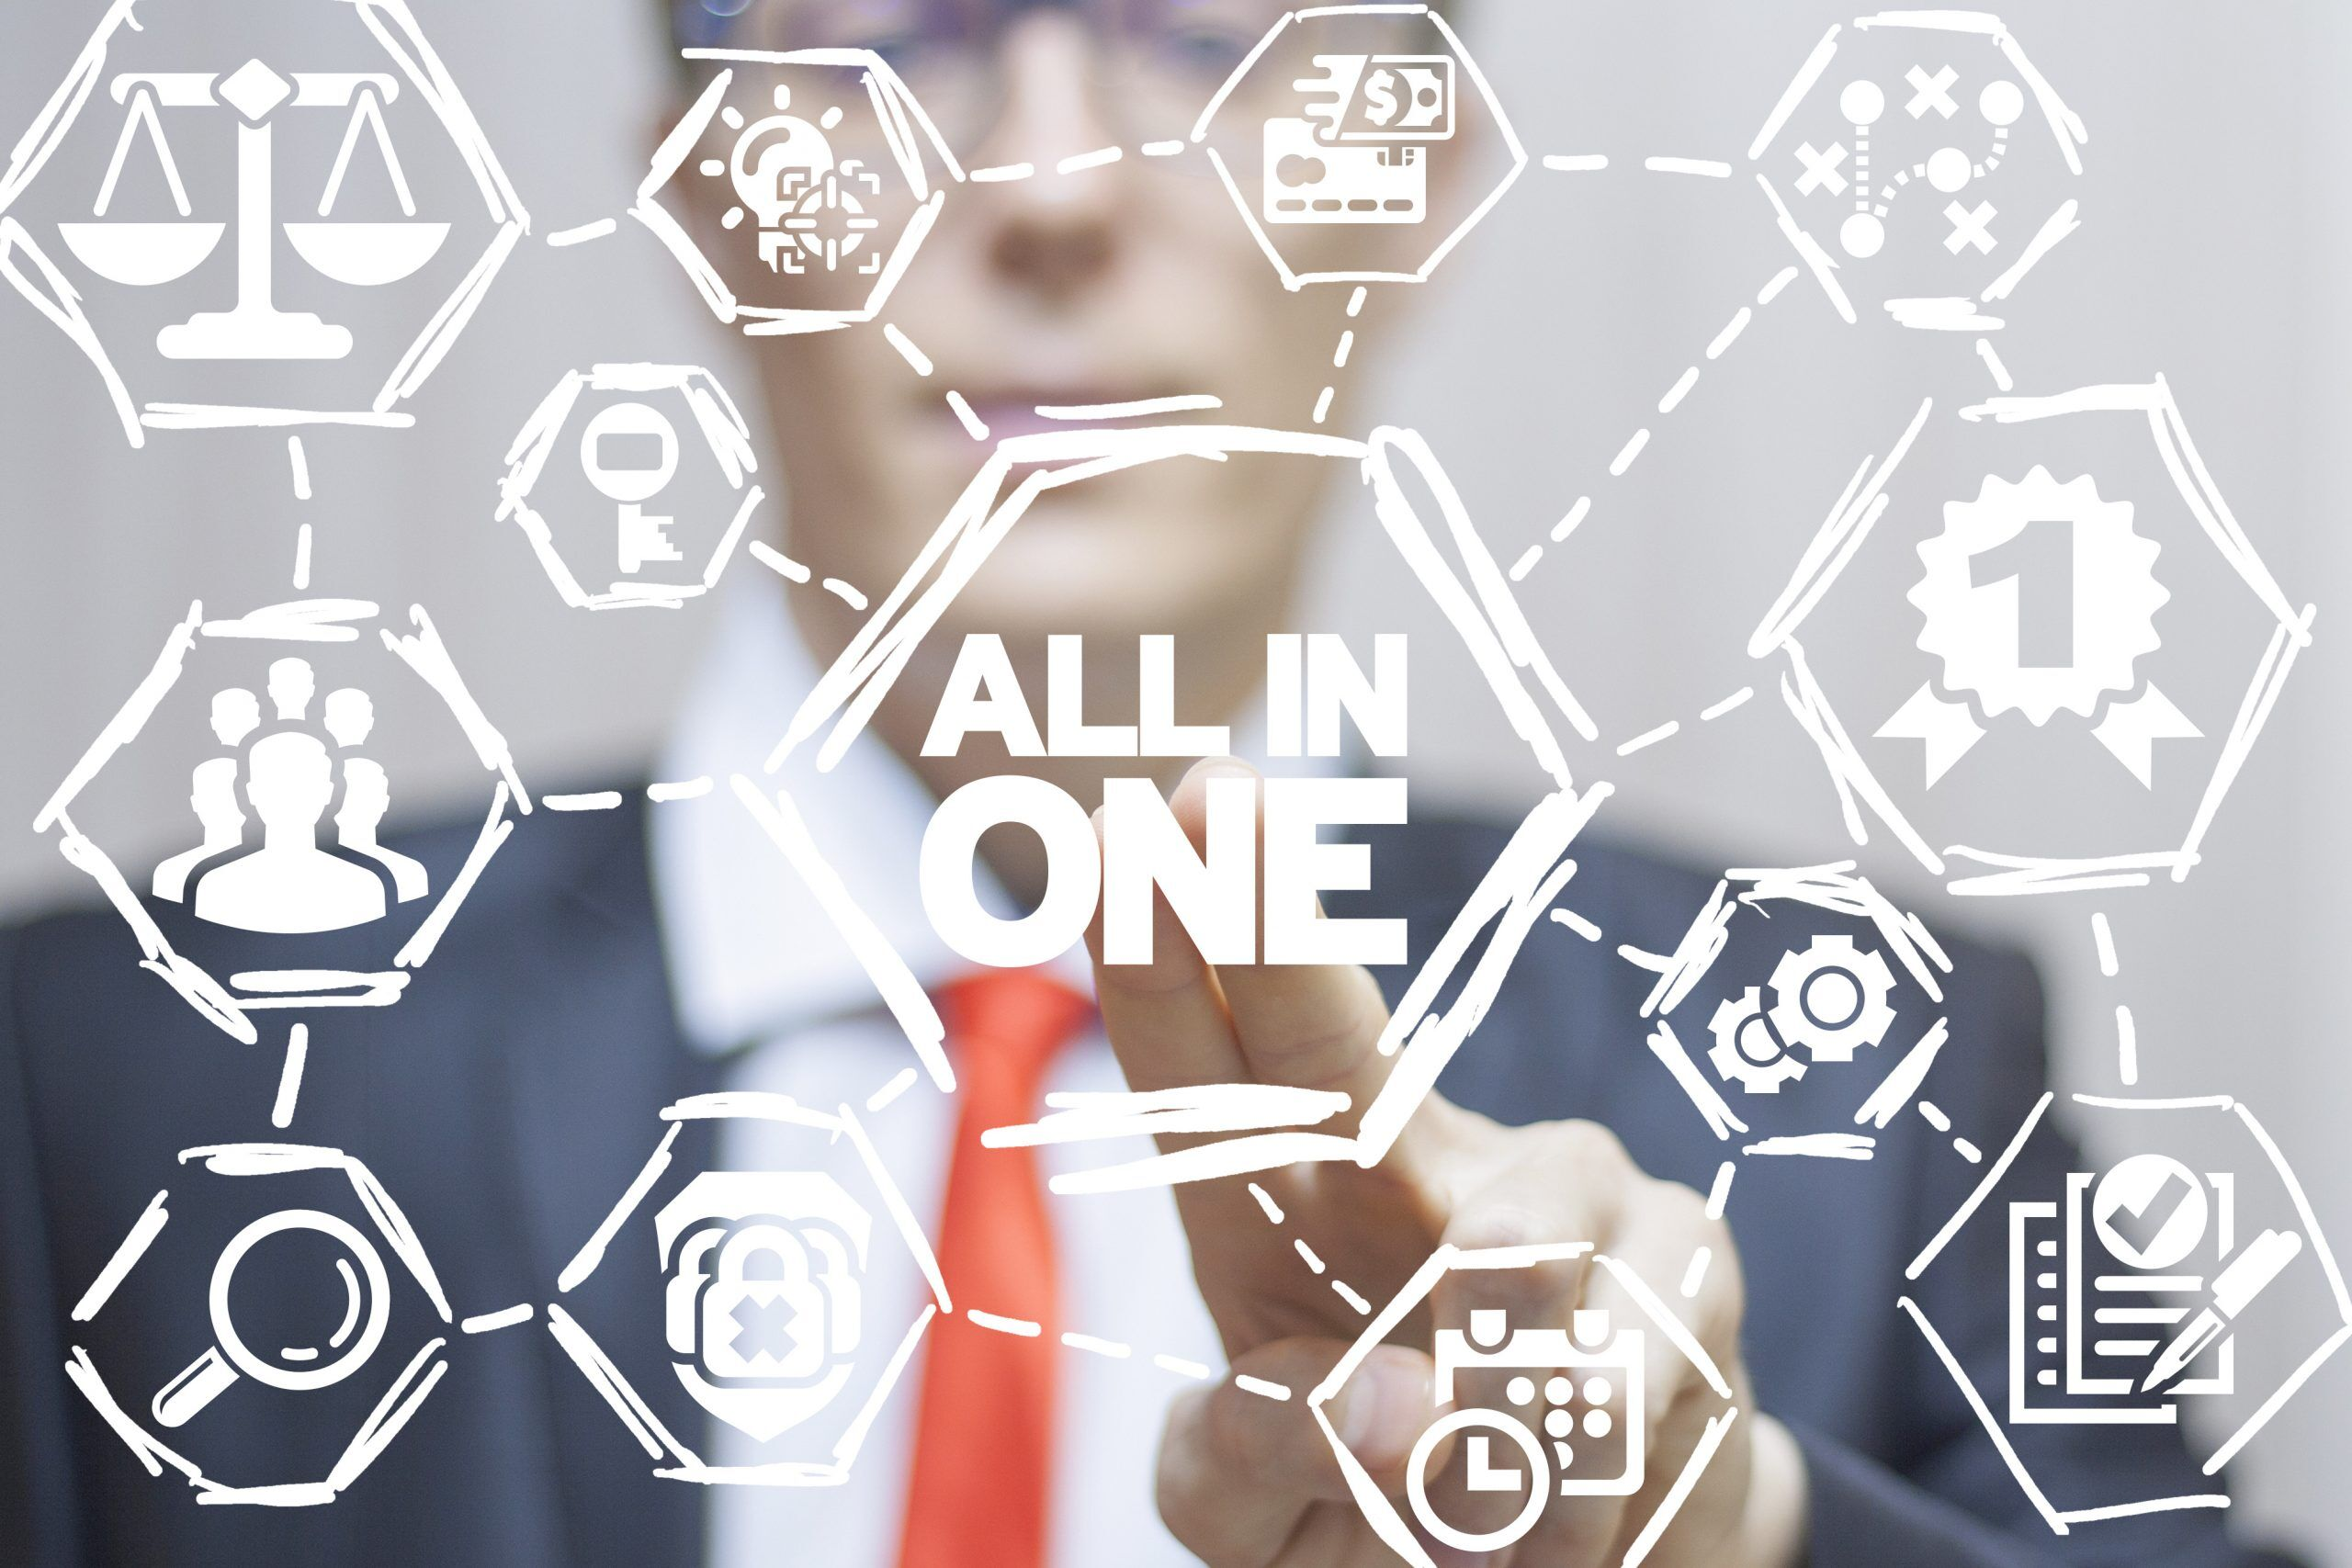 All in one business finance success concept.